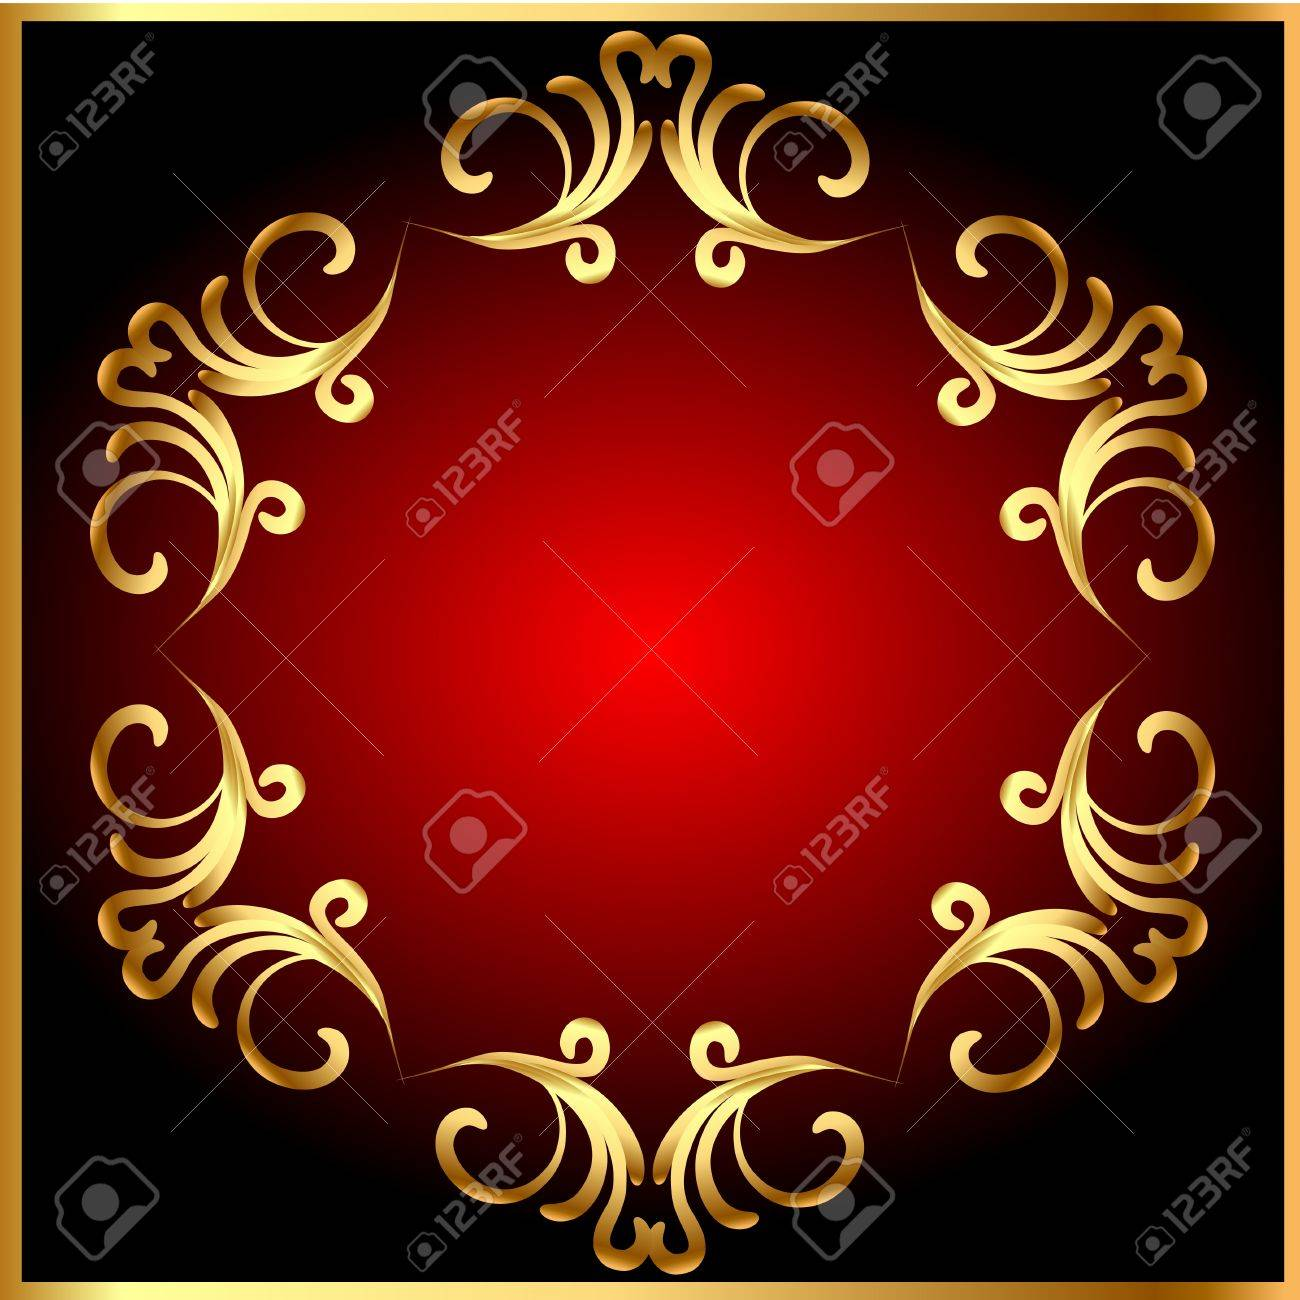 illustration frame background with gold(en) pattern on circle Stock Vector - 11929488